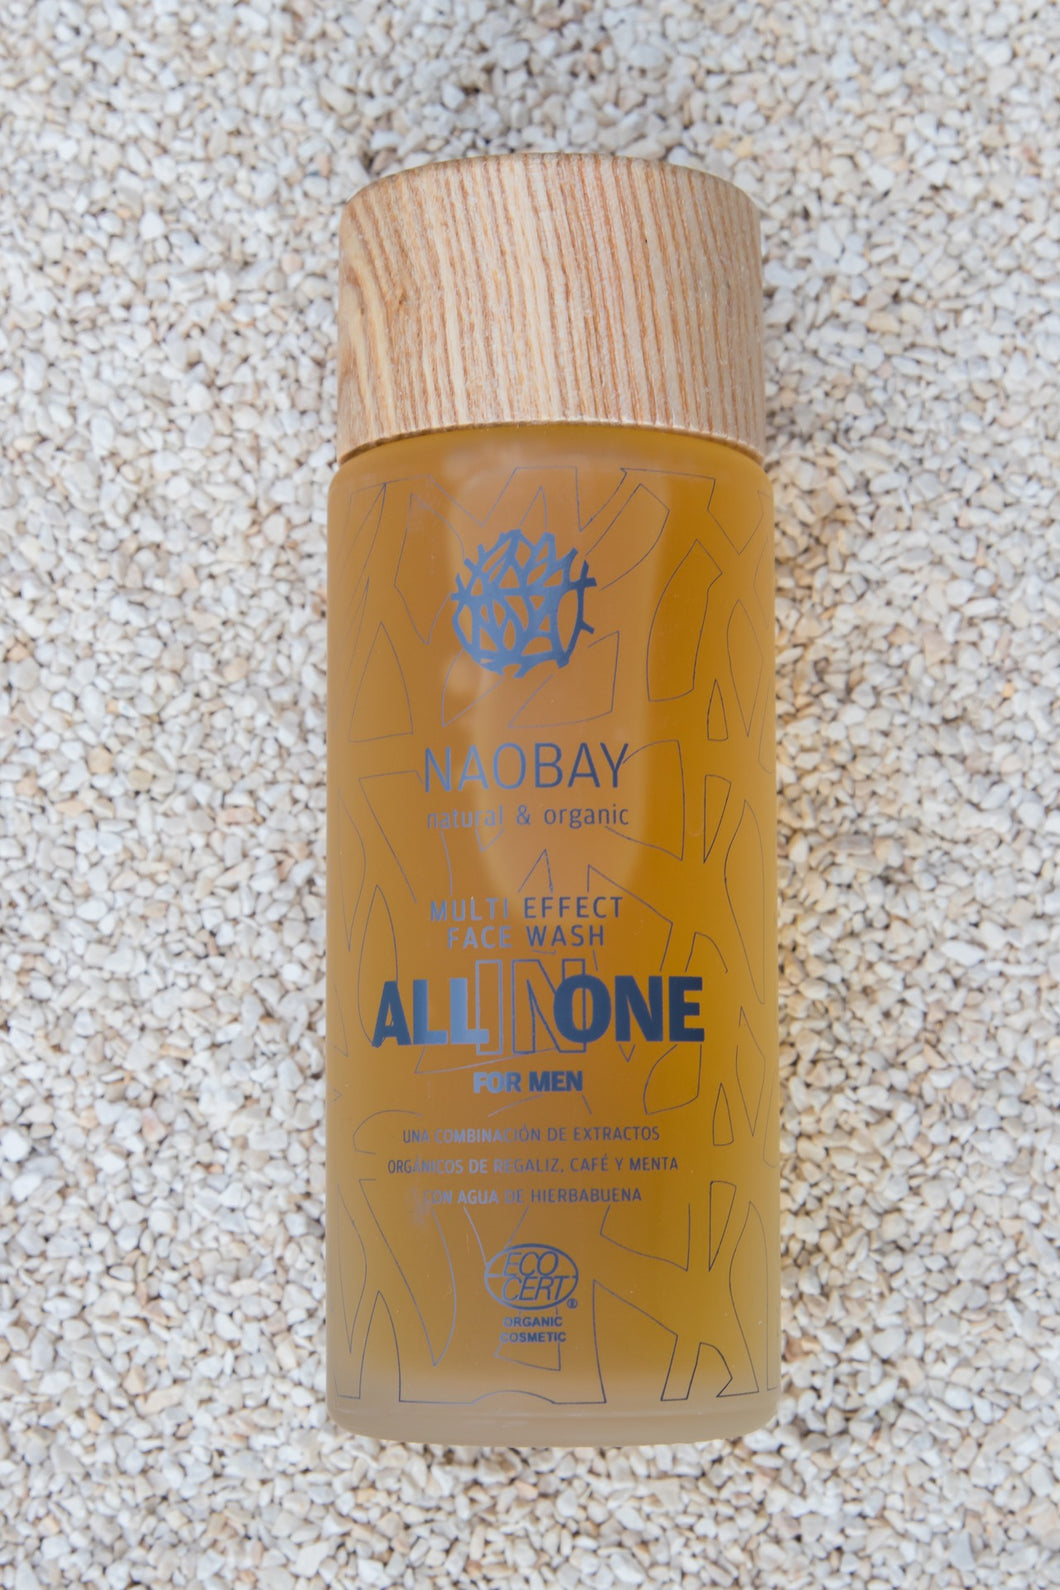 All in One Face Wash For Men Naobay